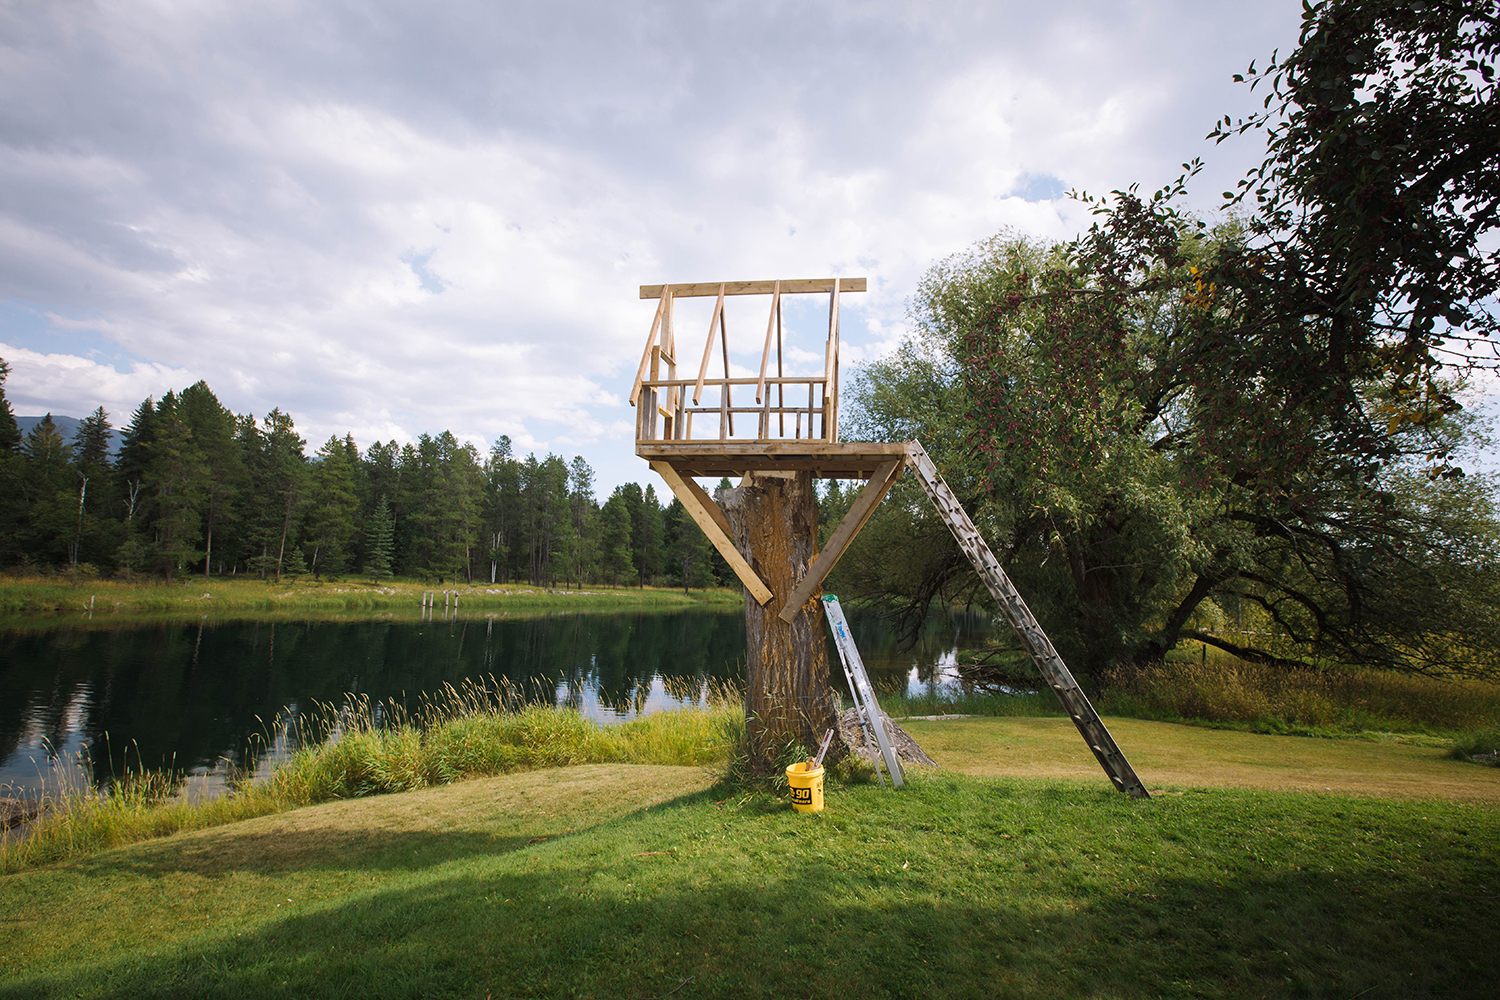 Isaac Johnston builds a treehouse for his kids